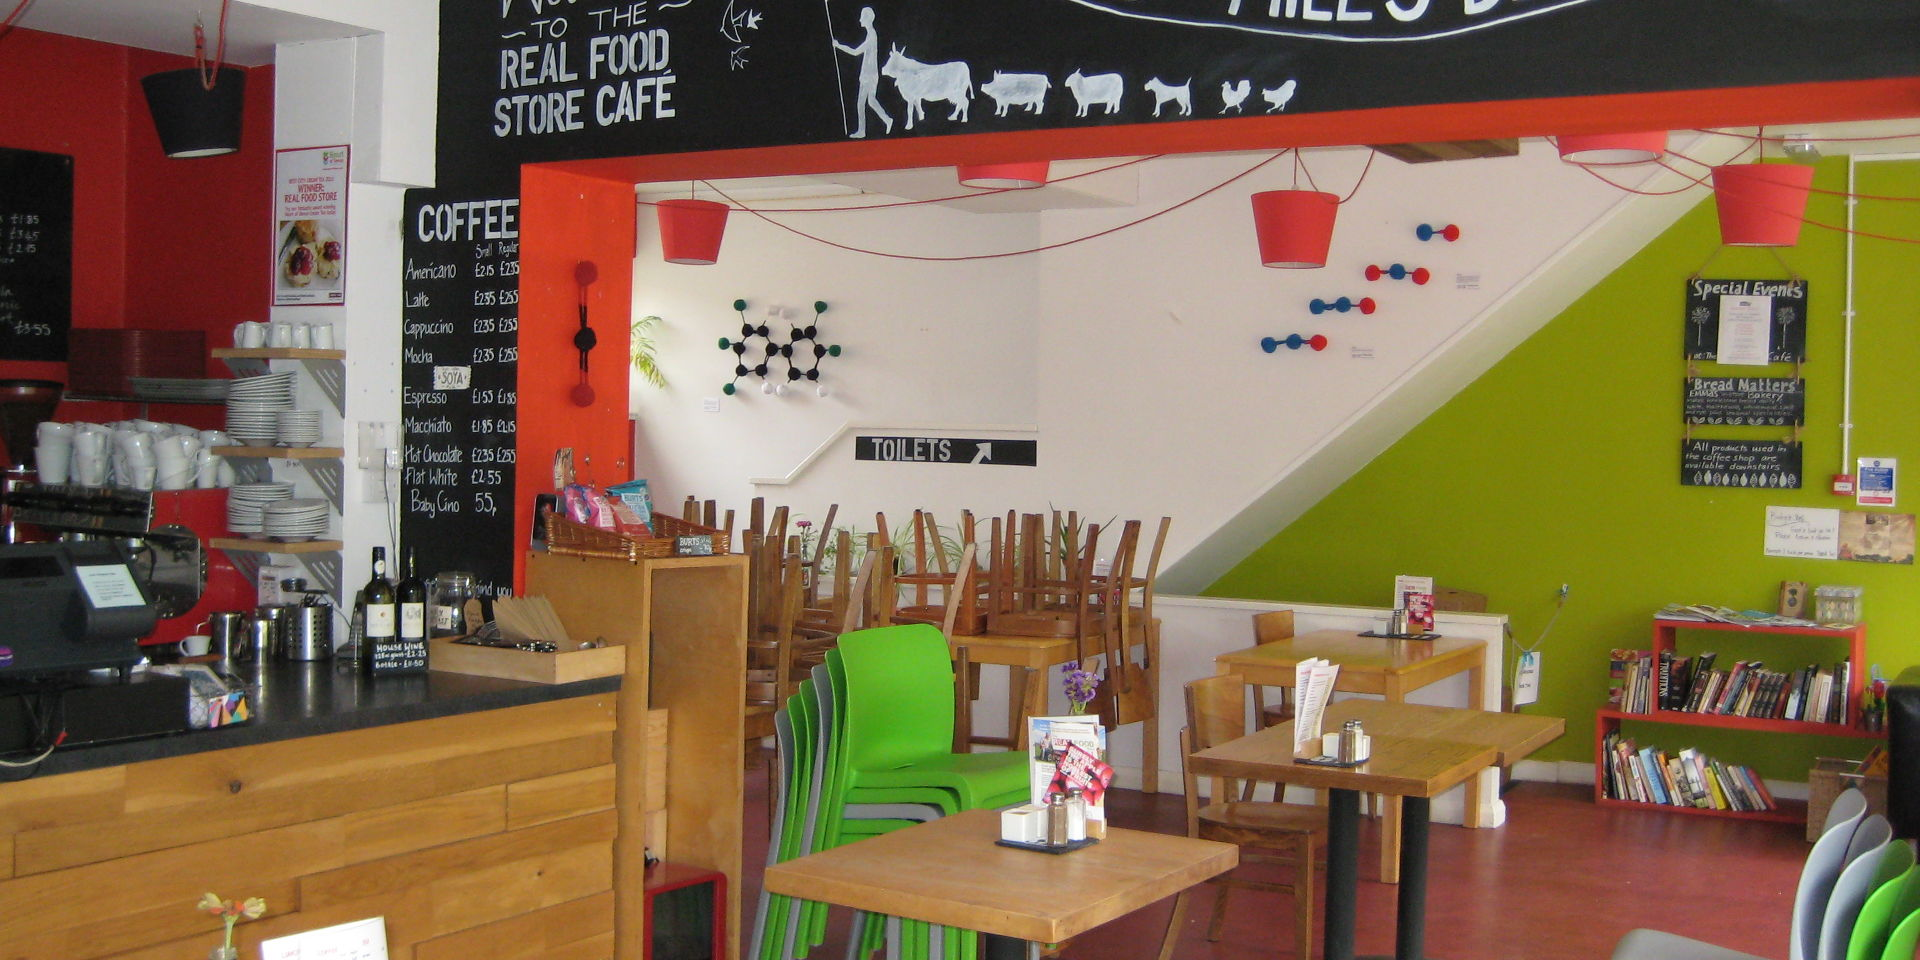 Can you spot CO2, a PCB, N2O, NO2 and NO on the walls of the Real Food Store Café?